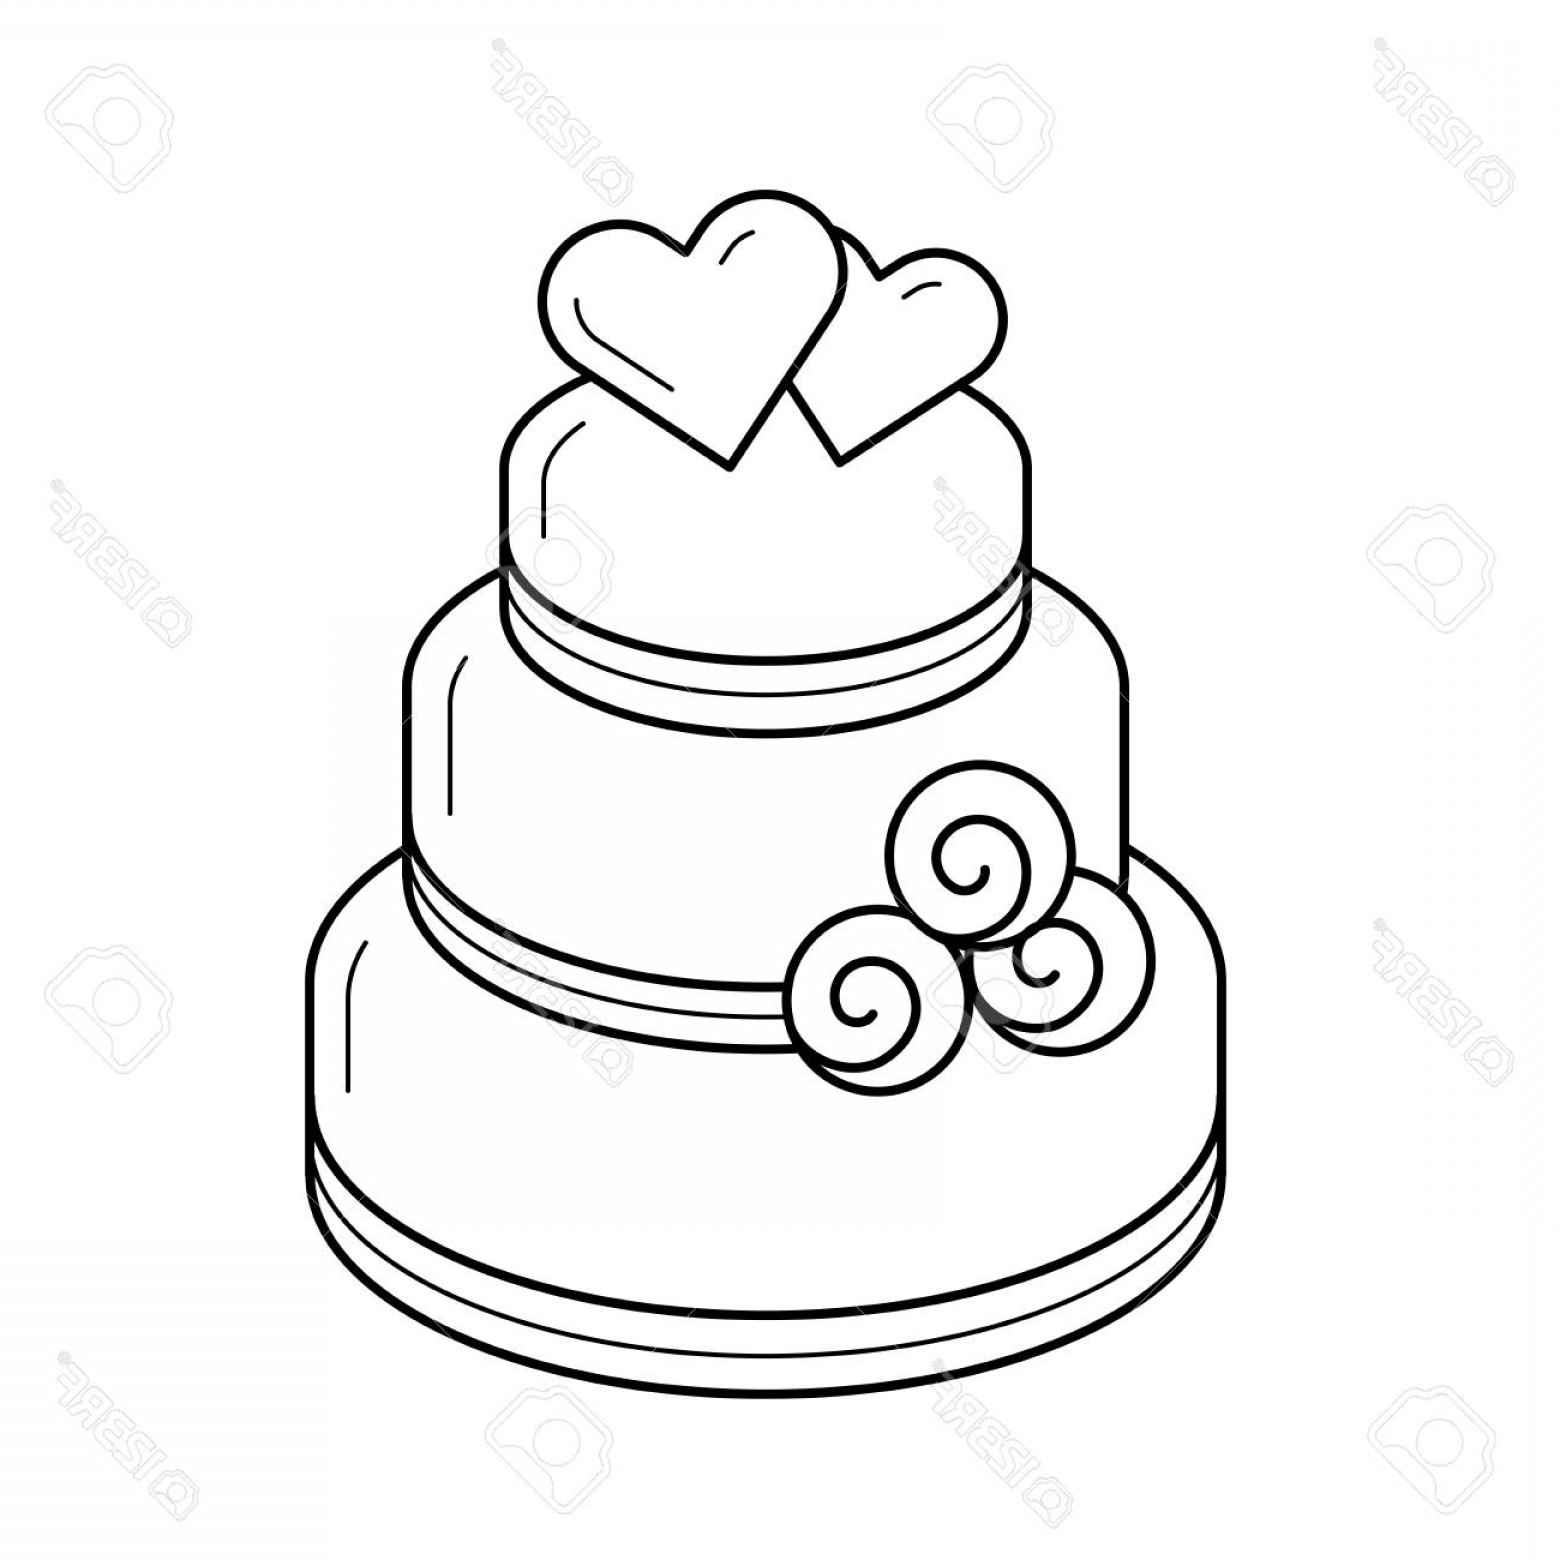 Heart desserts clipart black and white jpg transparent stock Photostock Vector Wedding Cake Vector Line Icon Isolated On ... jpg transparent stock